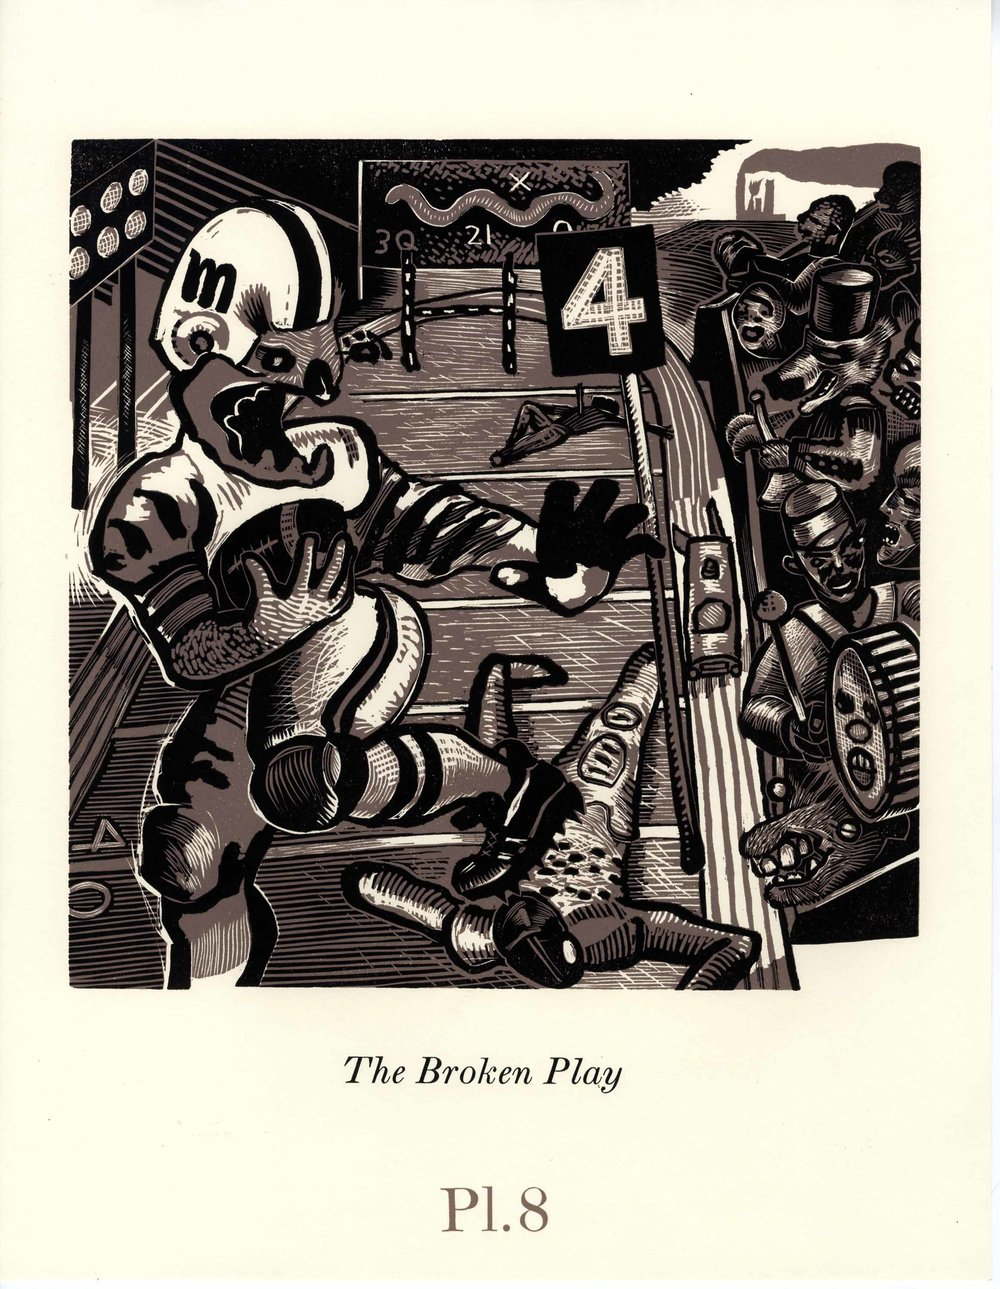 Mustardville_print_8_broken_play_sized.jpg